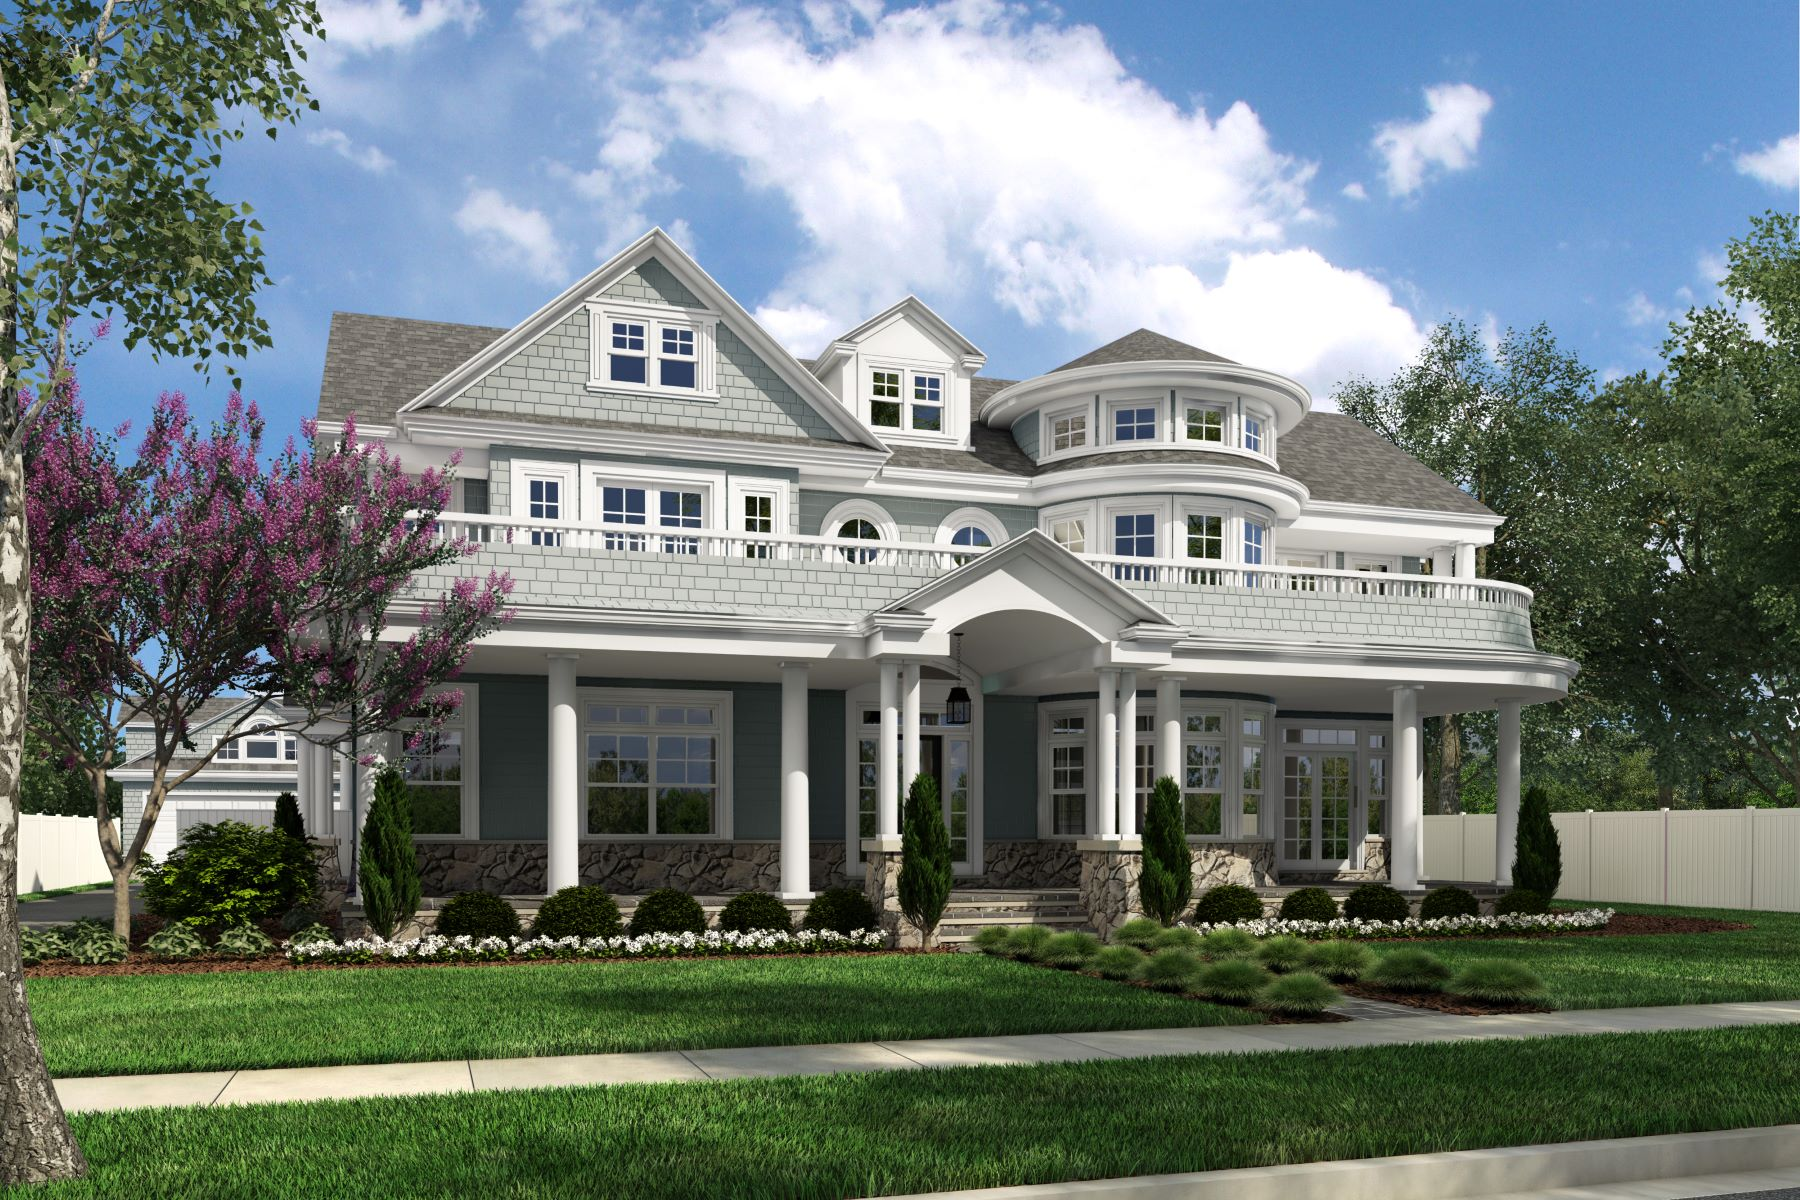 Single Family Homes for Sale at Extraordinary Ocean Views 10 Lorraine Avenue Spring Lake, New Jersey 07762 United States